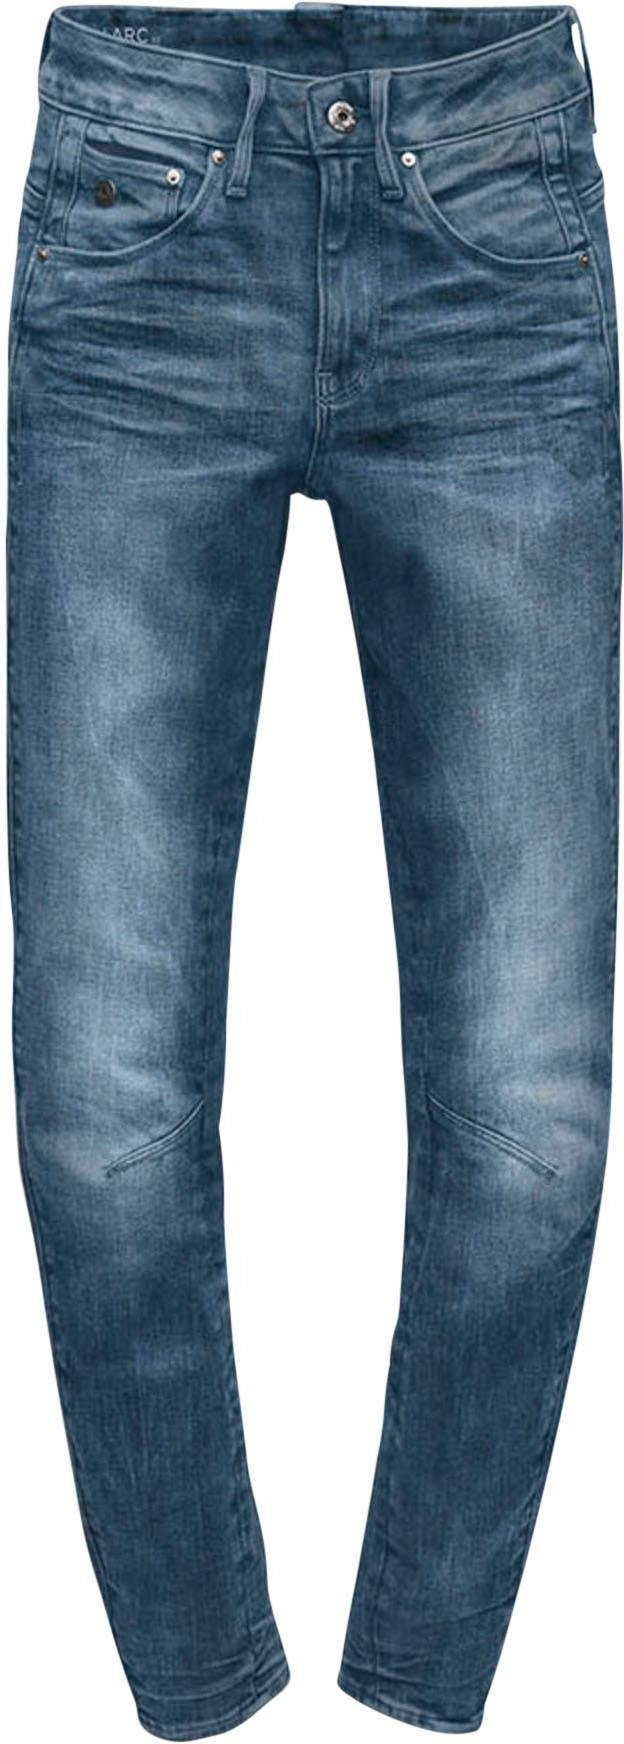 G-star Raw skinny fit jeans »Arc 3D Mid Skinny« online kopen op otto.nl